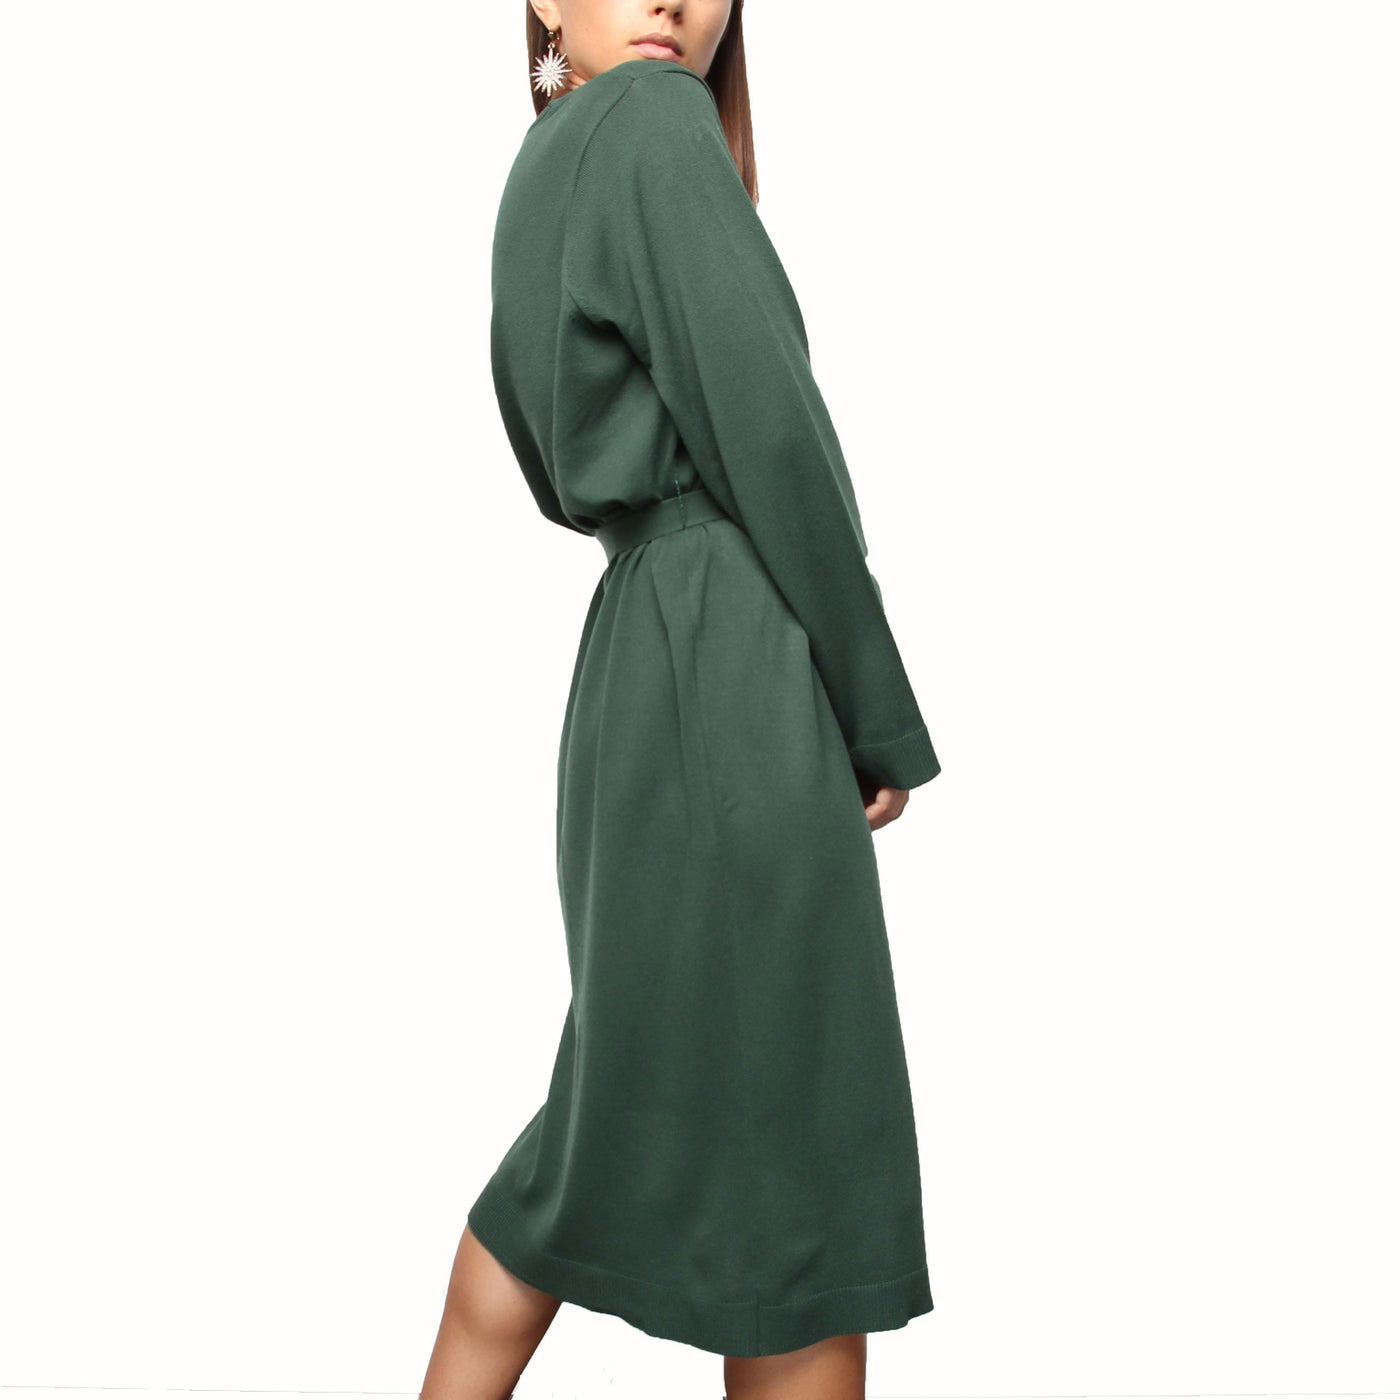 Emerald Knit Dress - Marble Hive